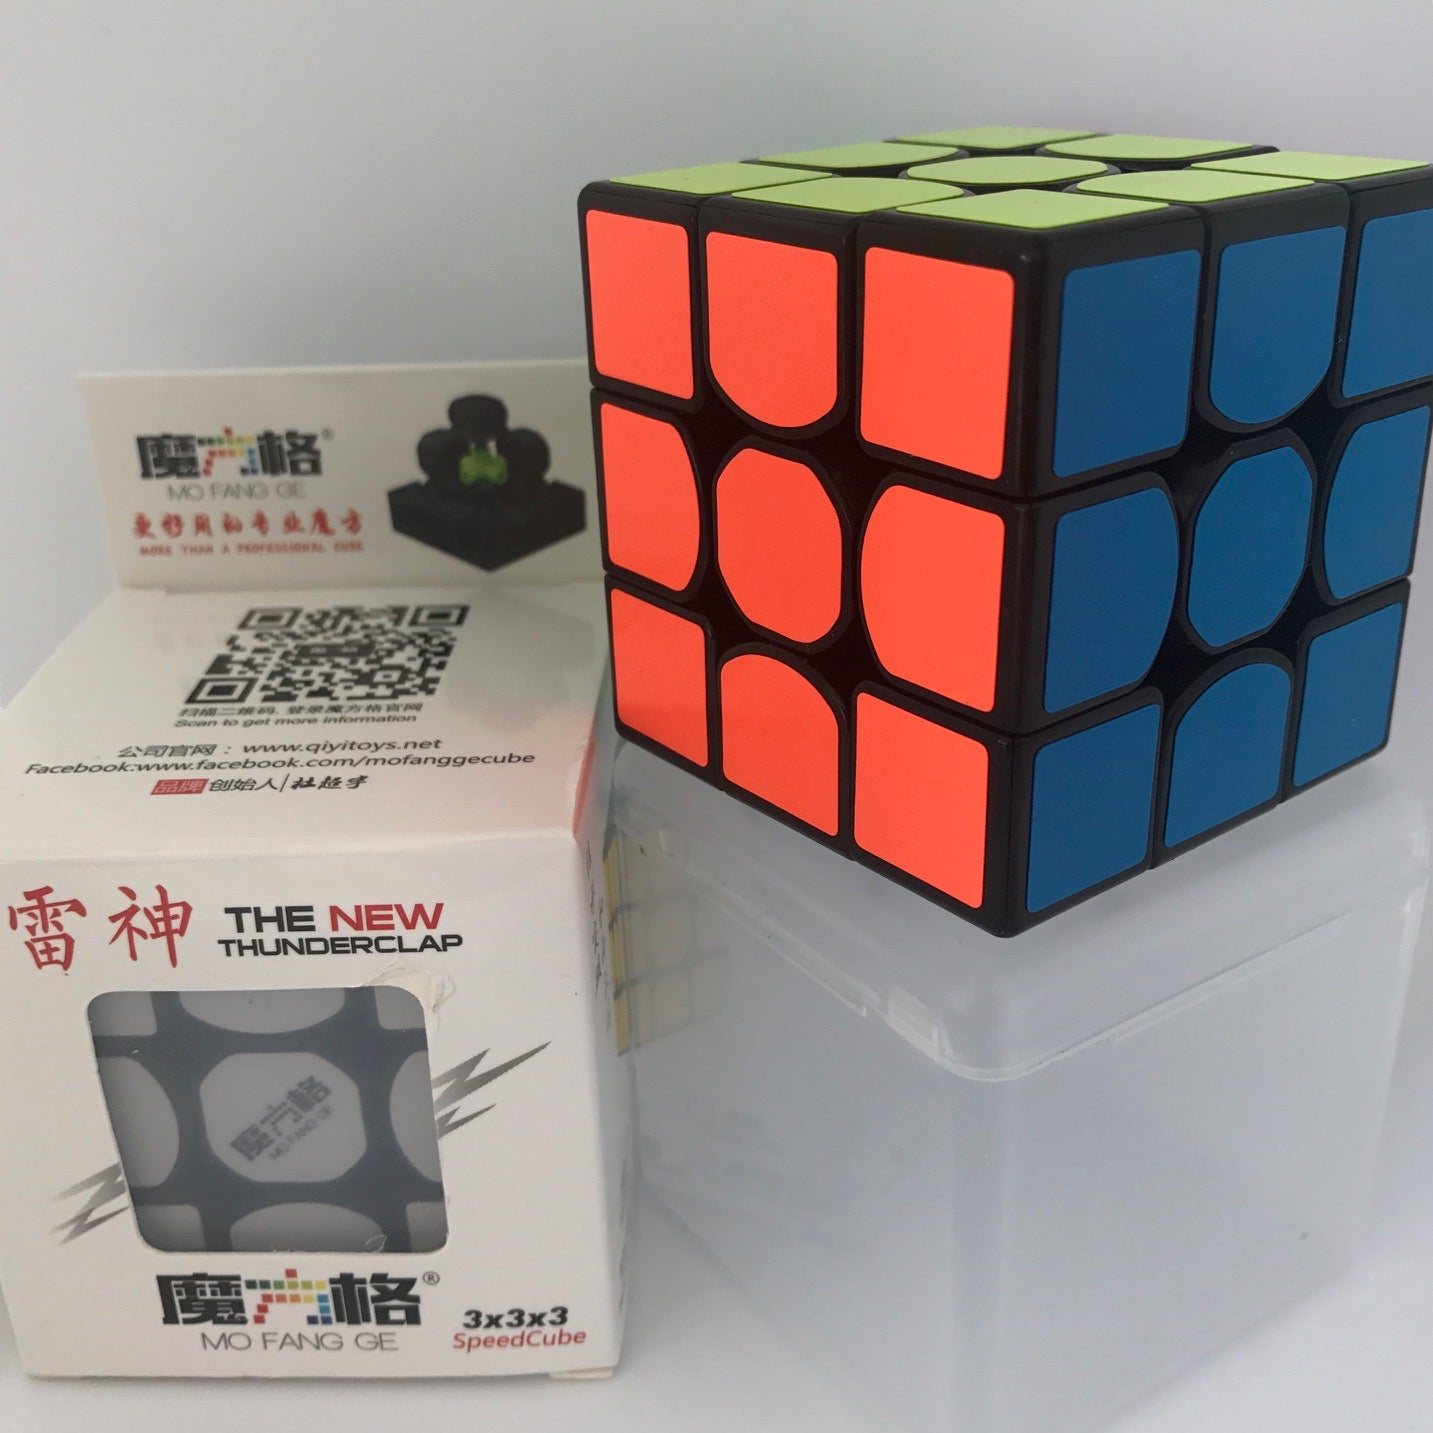 3x3 The New Thunderclap Cube